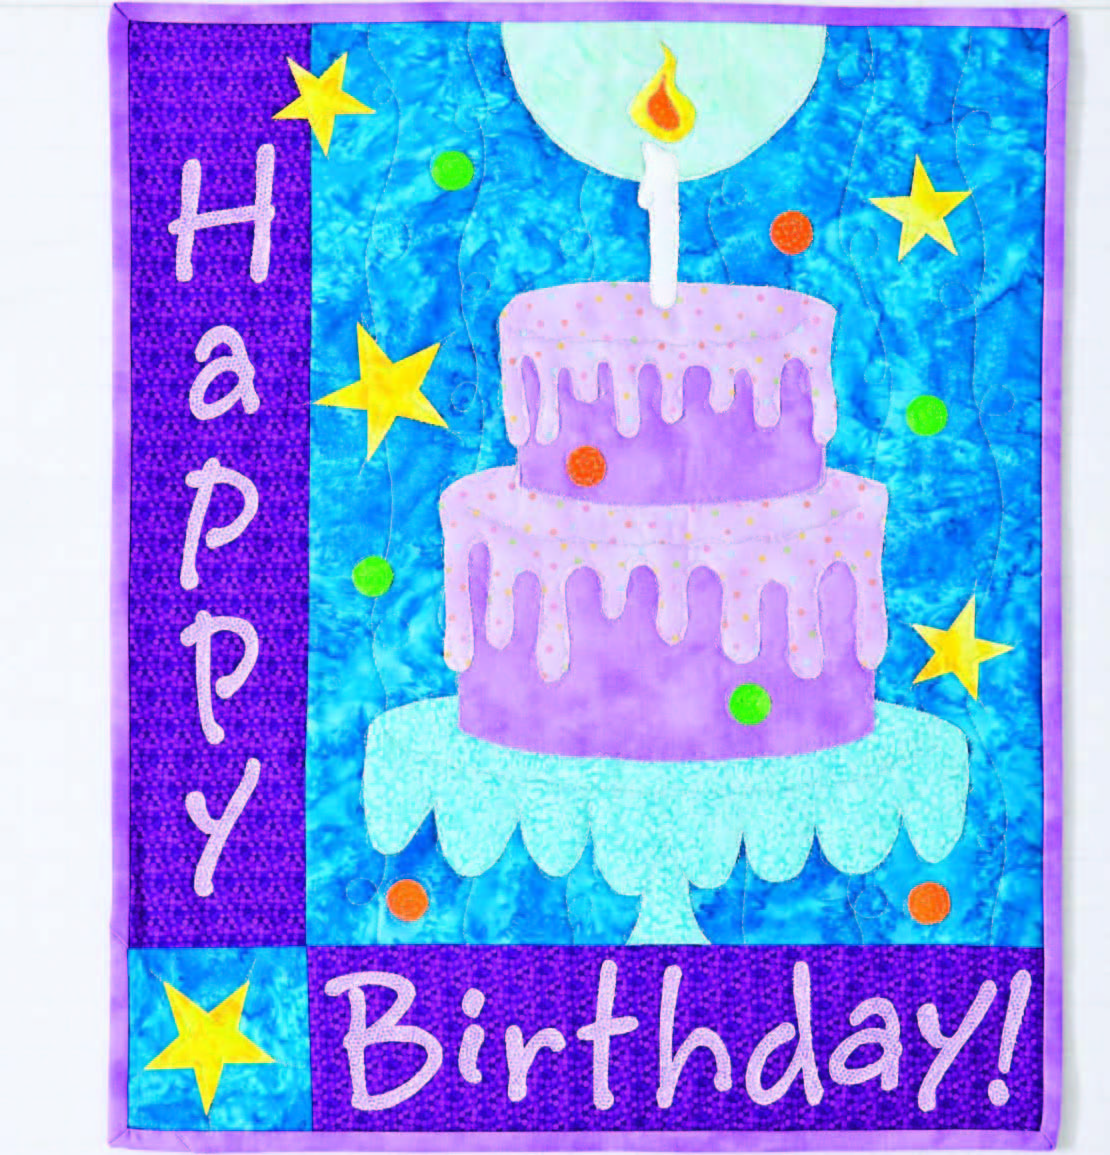 Happy Birthday Cake Quilt From C&T Publishing